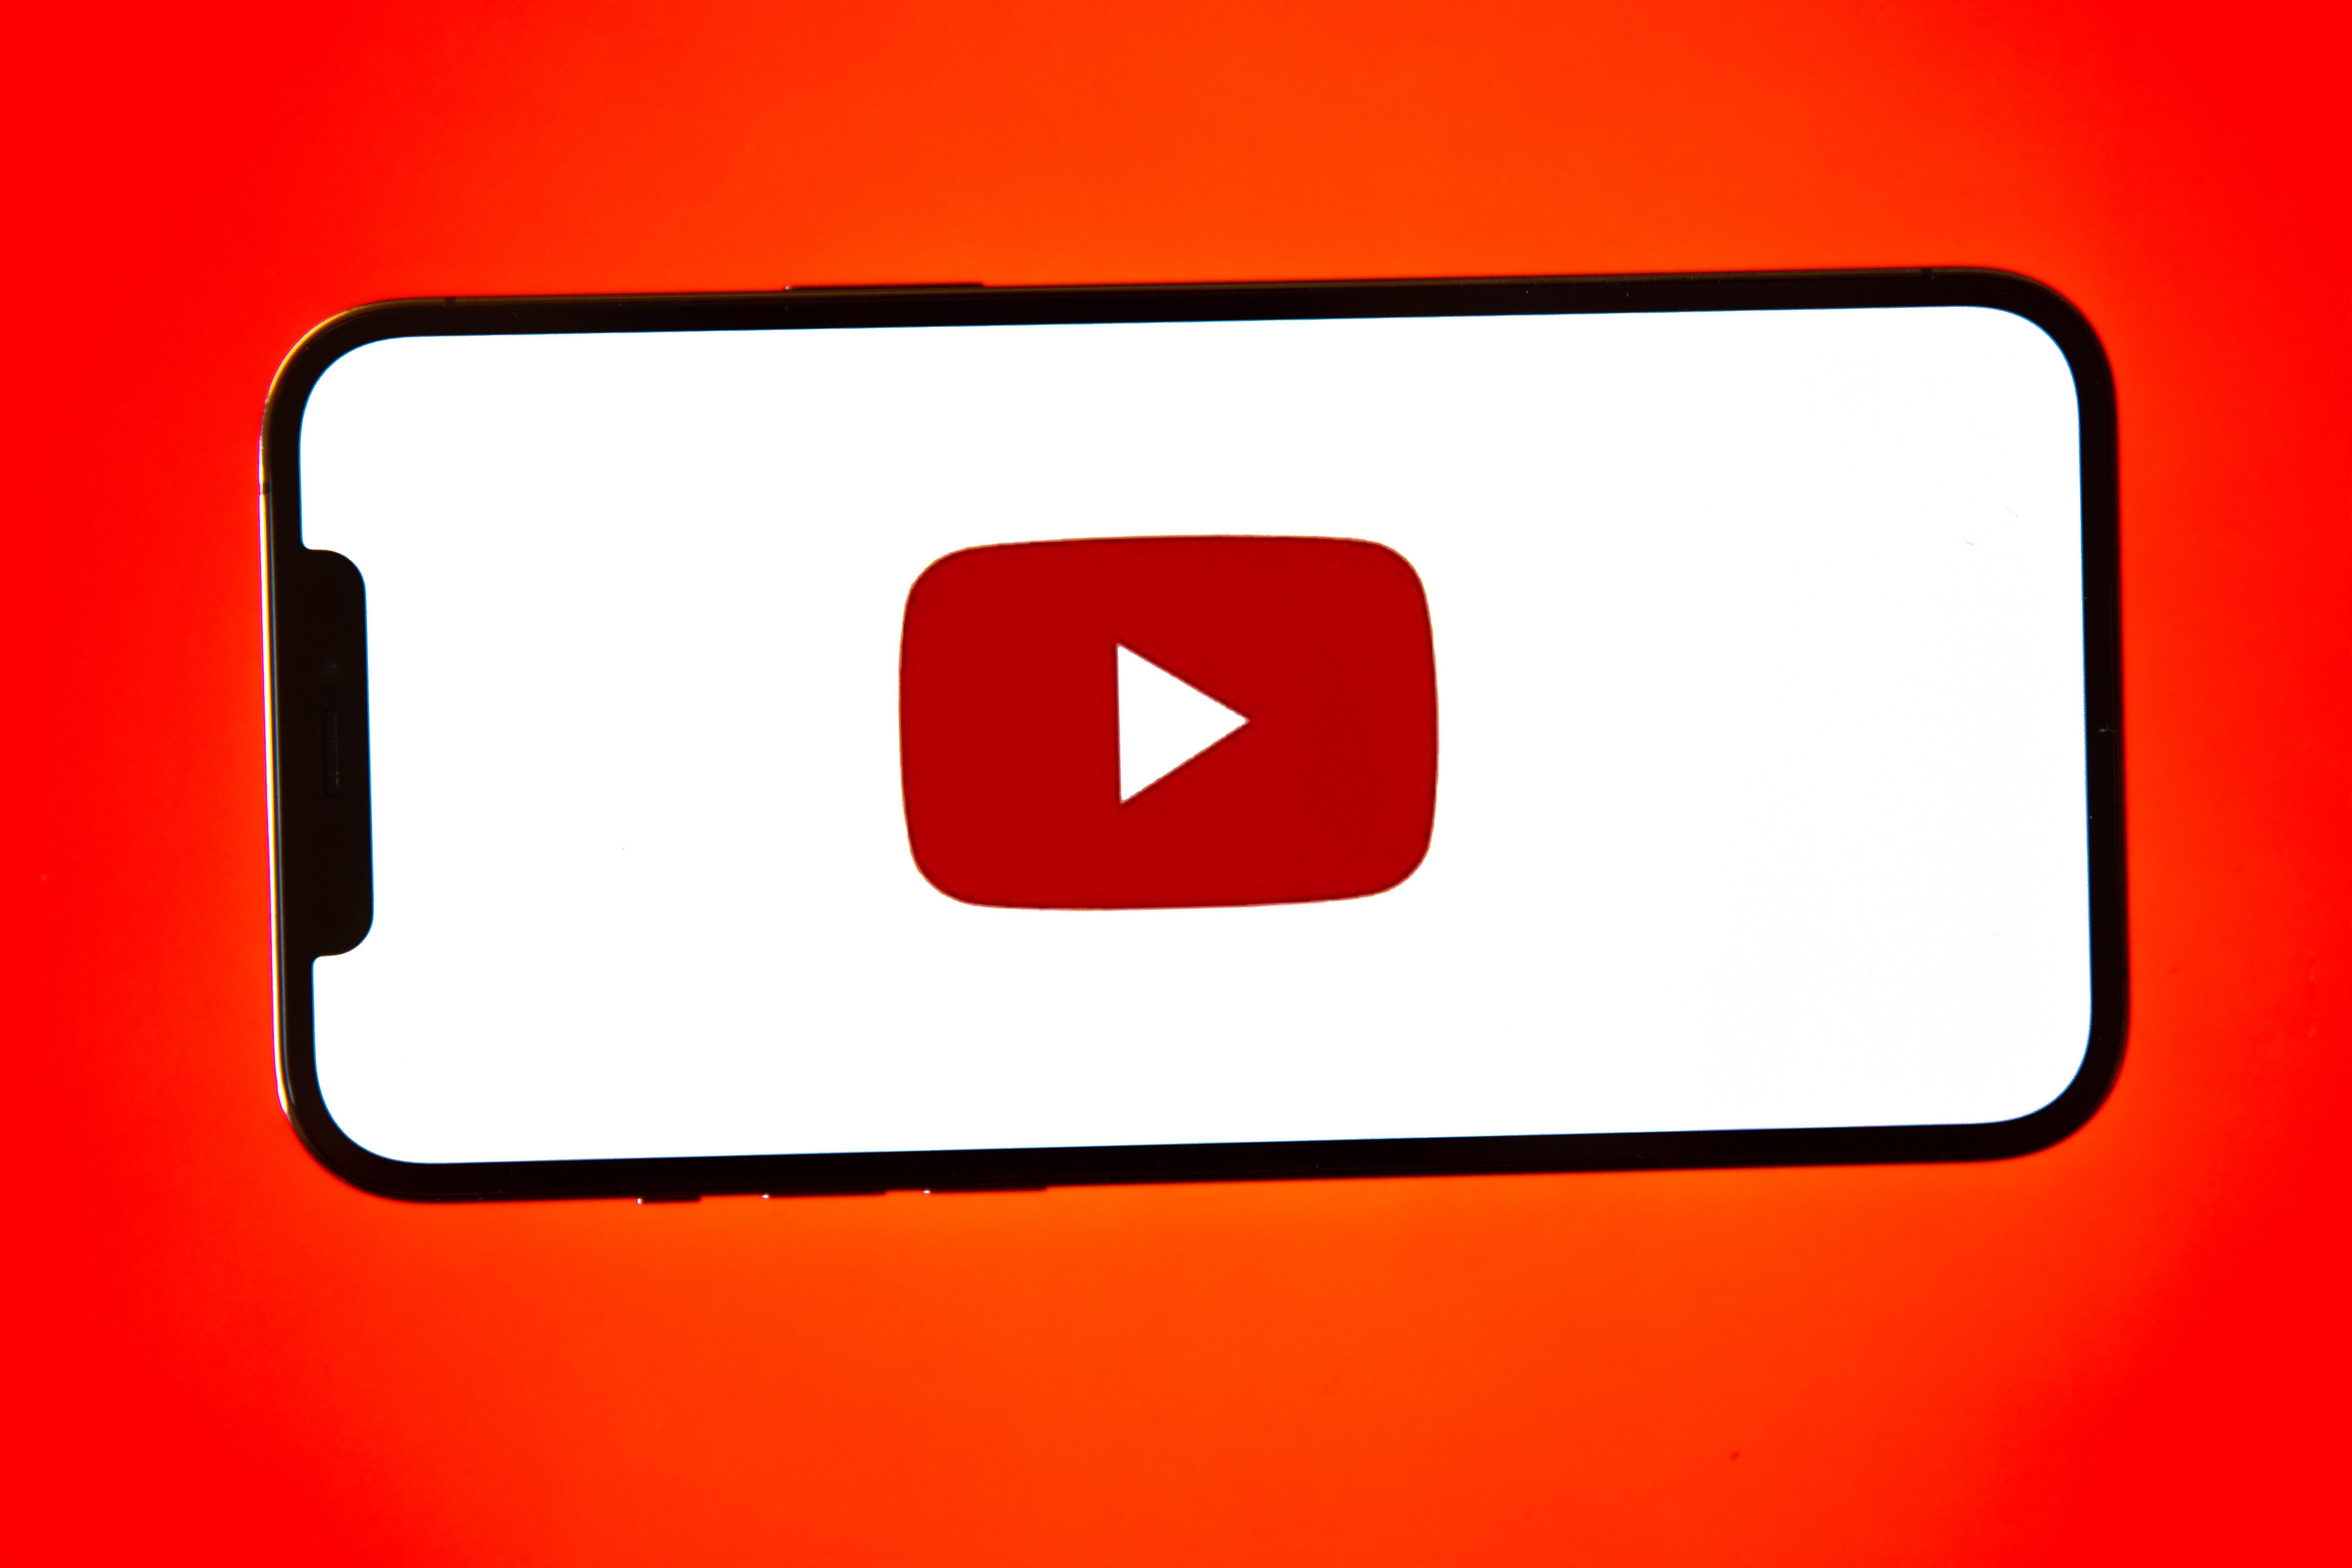 you-tube-app-video-photos-youtube-logo-3387-edit-2